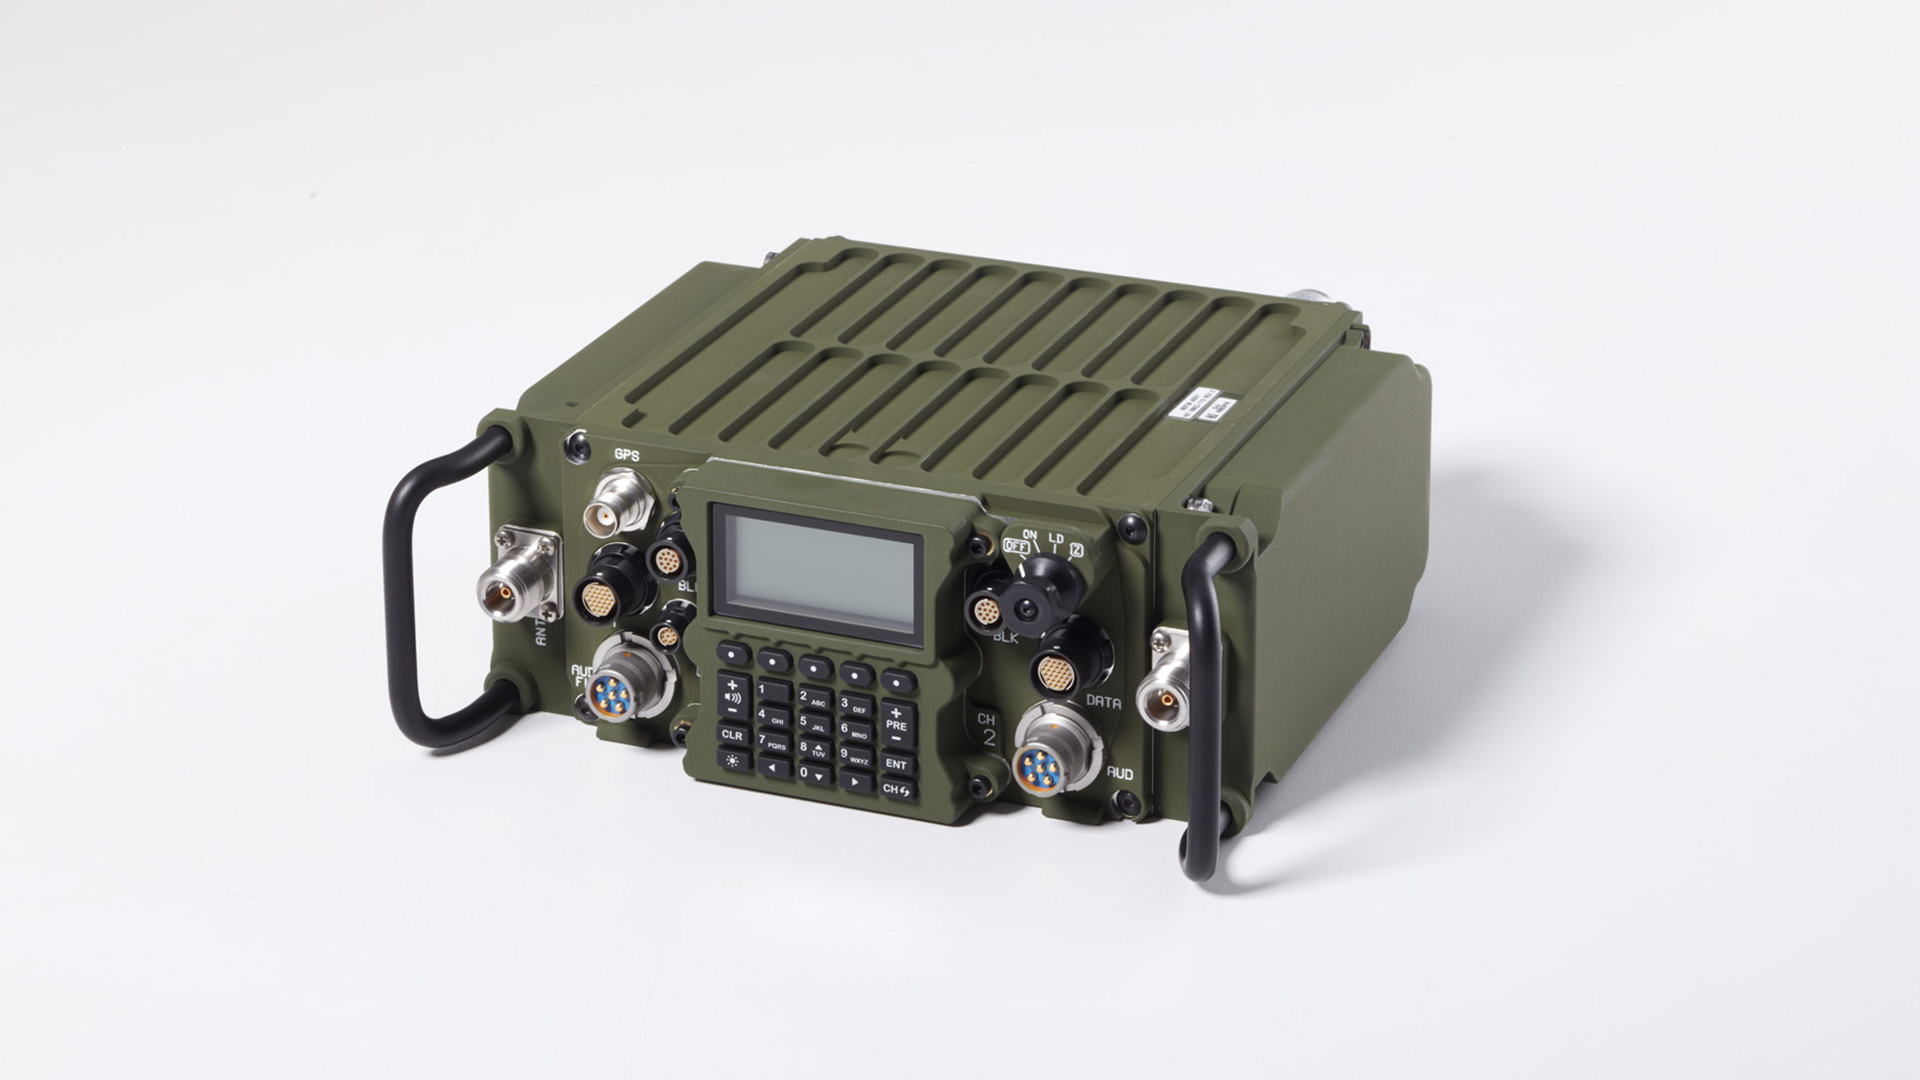 Trunet An Prc 162 V 1 Networked Communications Ground Radio